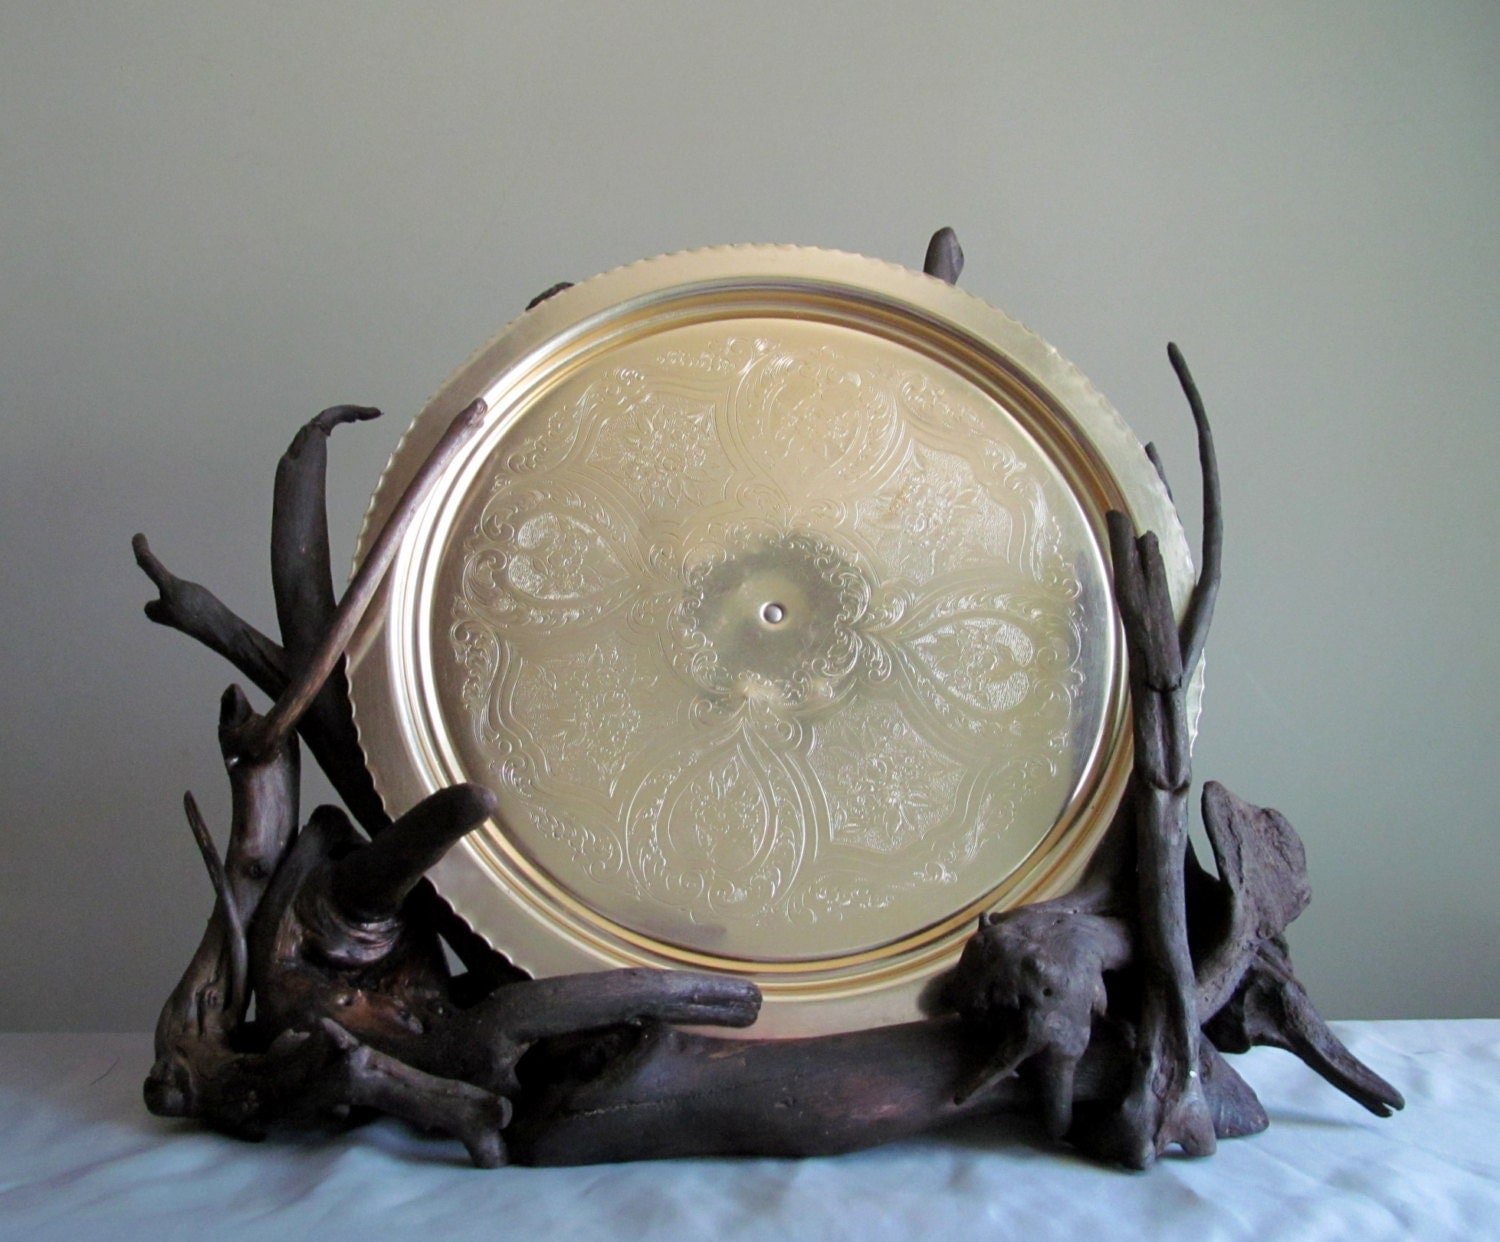 Driftwood sculptural plate display decorative plate holder for Decoration plater